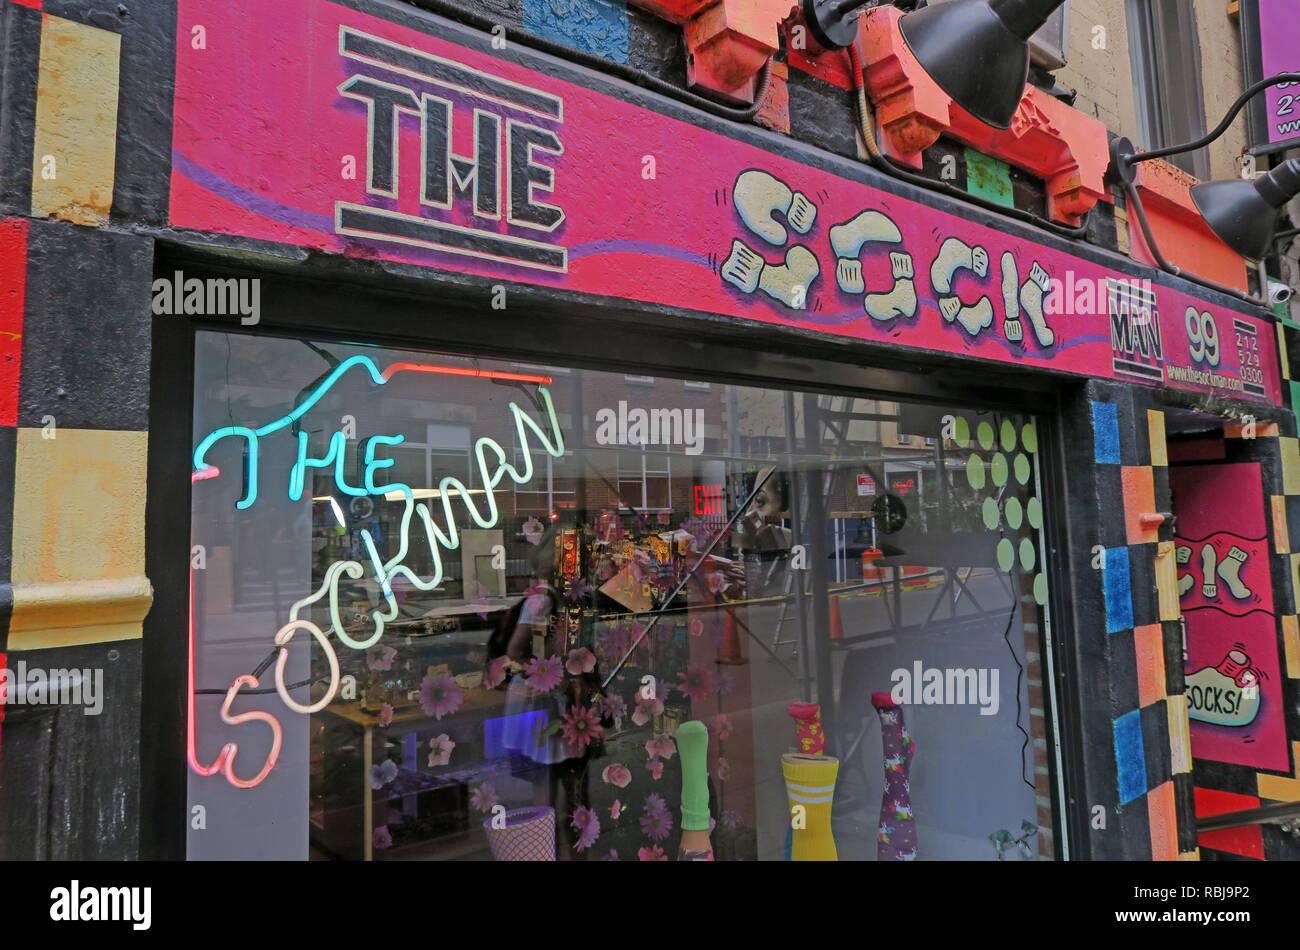 The pink sockman shop, quirky retail, 99 St Marks Pl, New York, NYC, USA - Stock Image